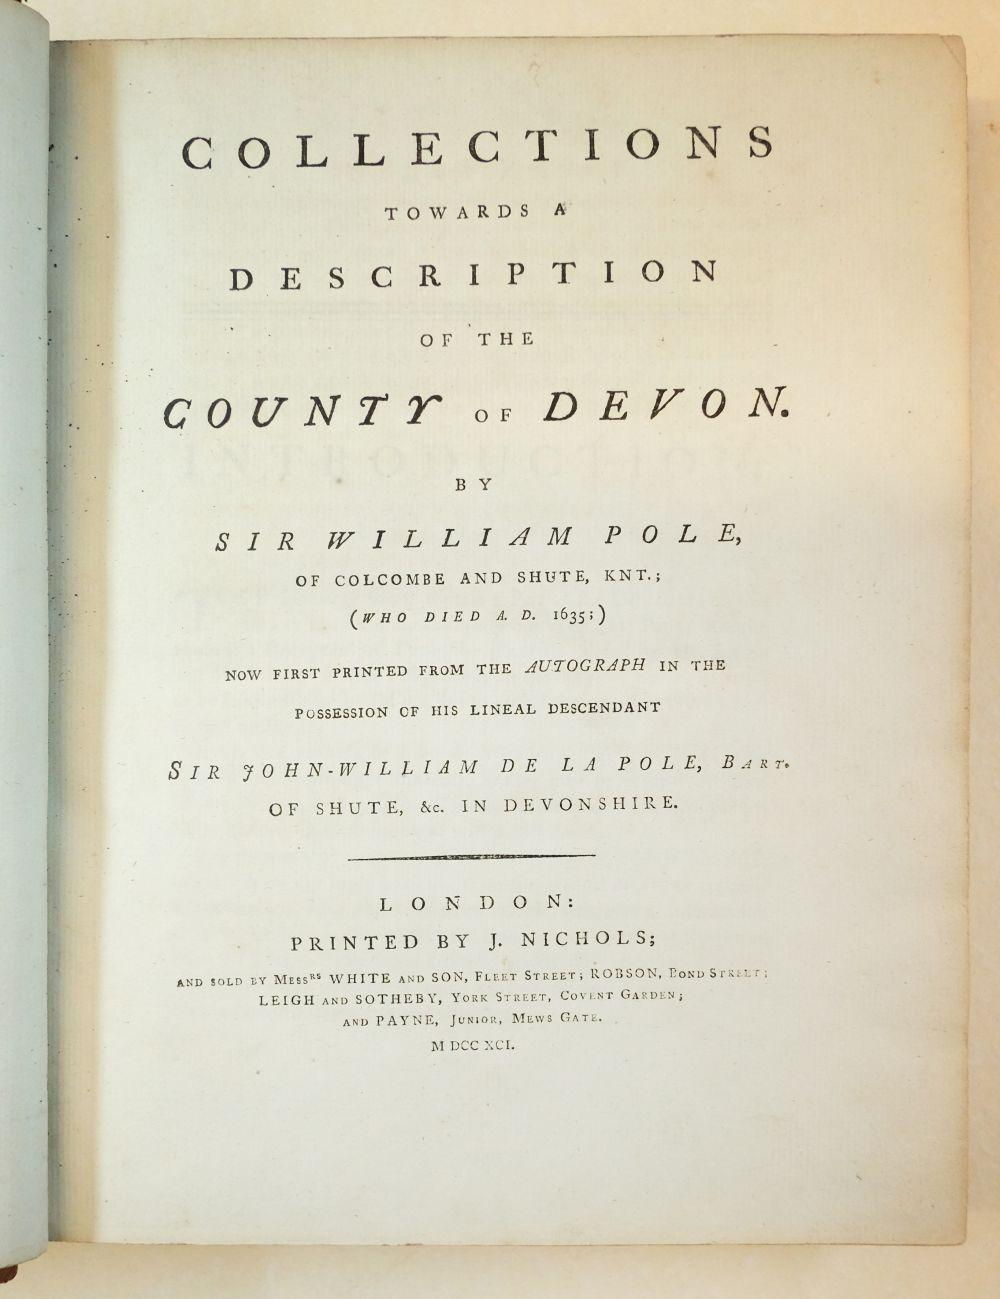 Pole (Sir William). Collections Towards a Description of the County of Devon, 1791